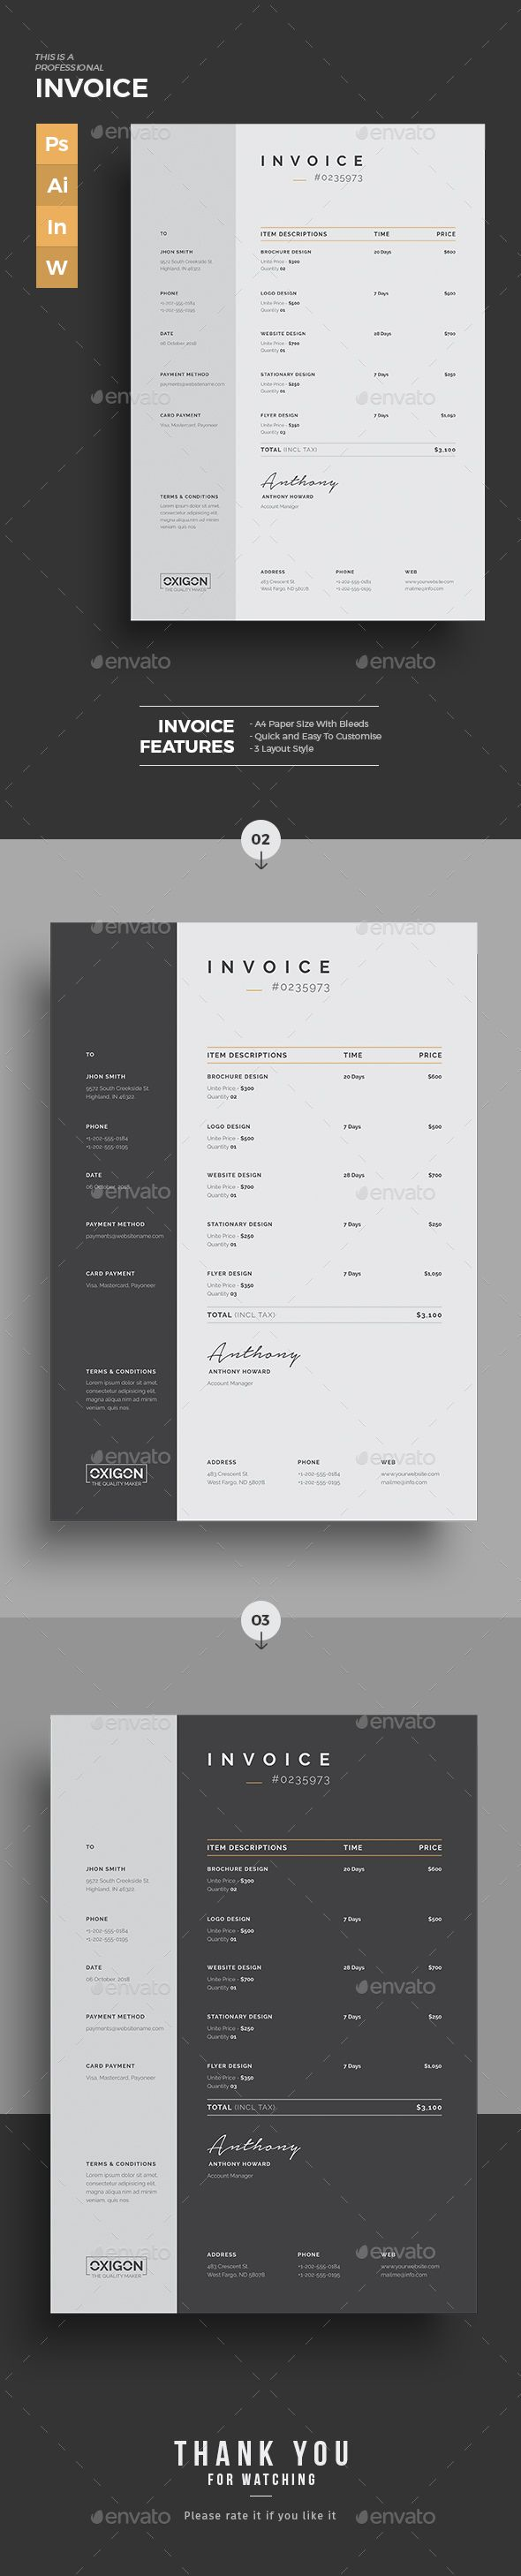 Consulting Invoice Template Pdf Best  Invoice Design Ideas On Pinterest  Invoice Layout  Delivery Receipt Email Excel with Shopping Receipt Template Invoice Template Available In Excel  Word  Psd  Ai  Download Now Sample Letter Of Acknowledgement Receipt Of Payment Pdf